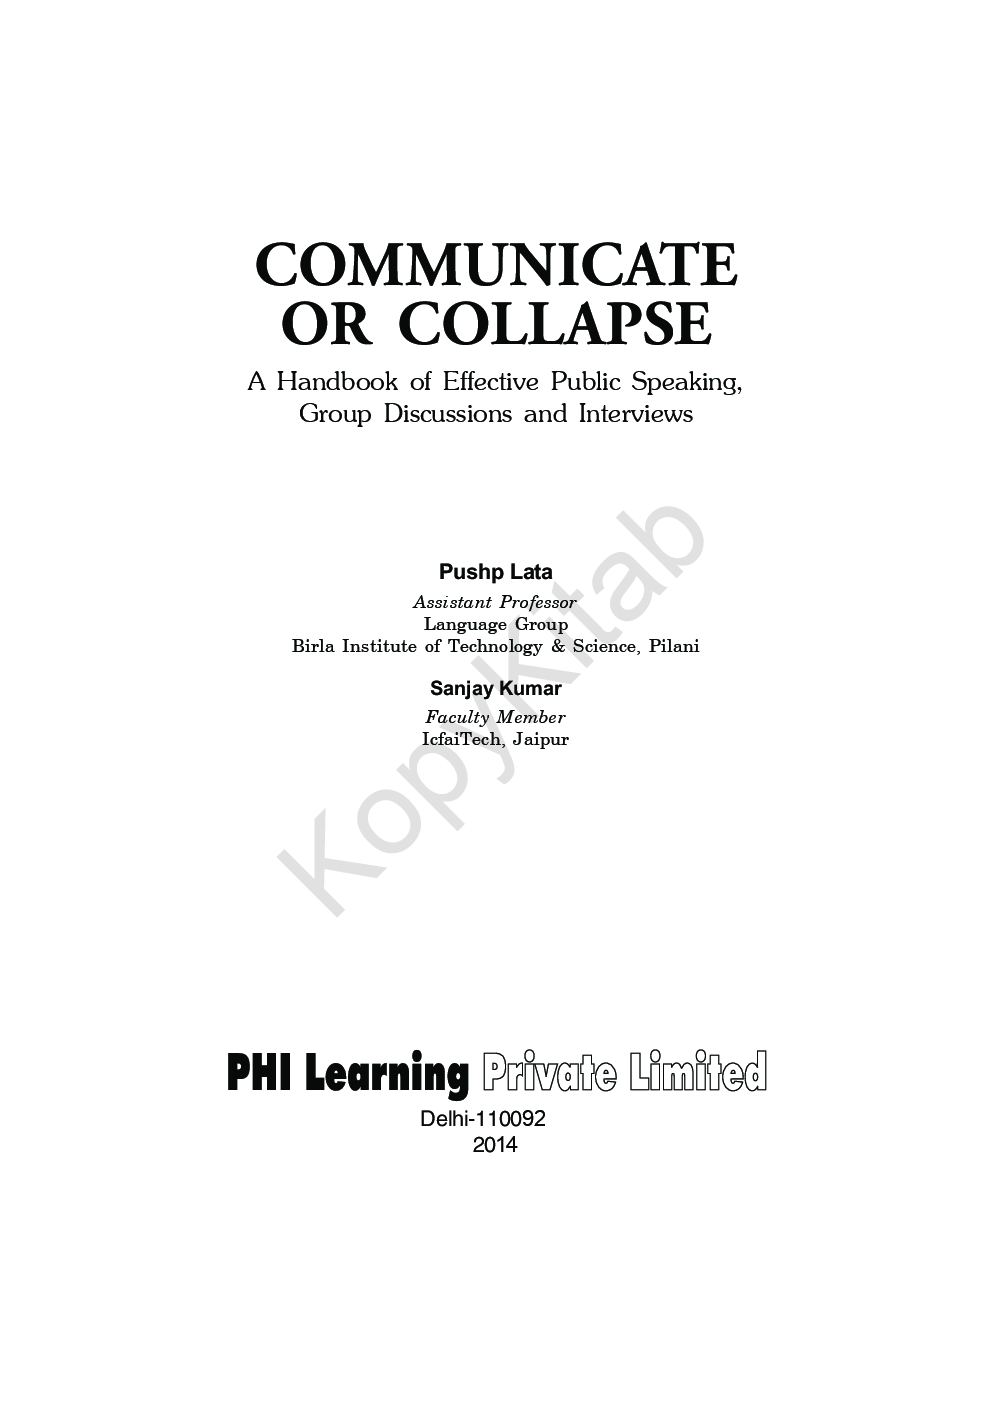 Communicate Or Collapse: A Handbook Of Effective Public Speaking, Group Discussions And Interviews - Page 2